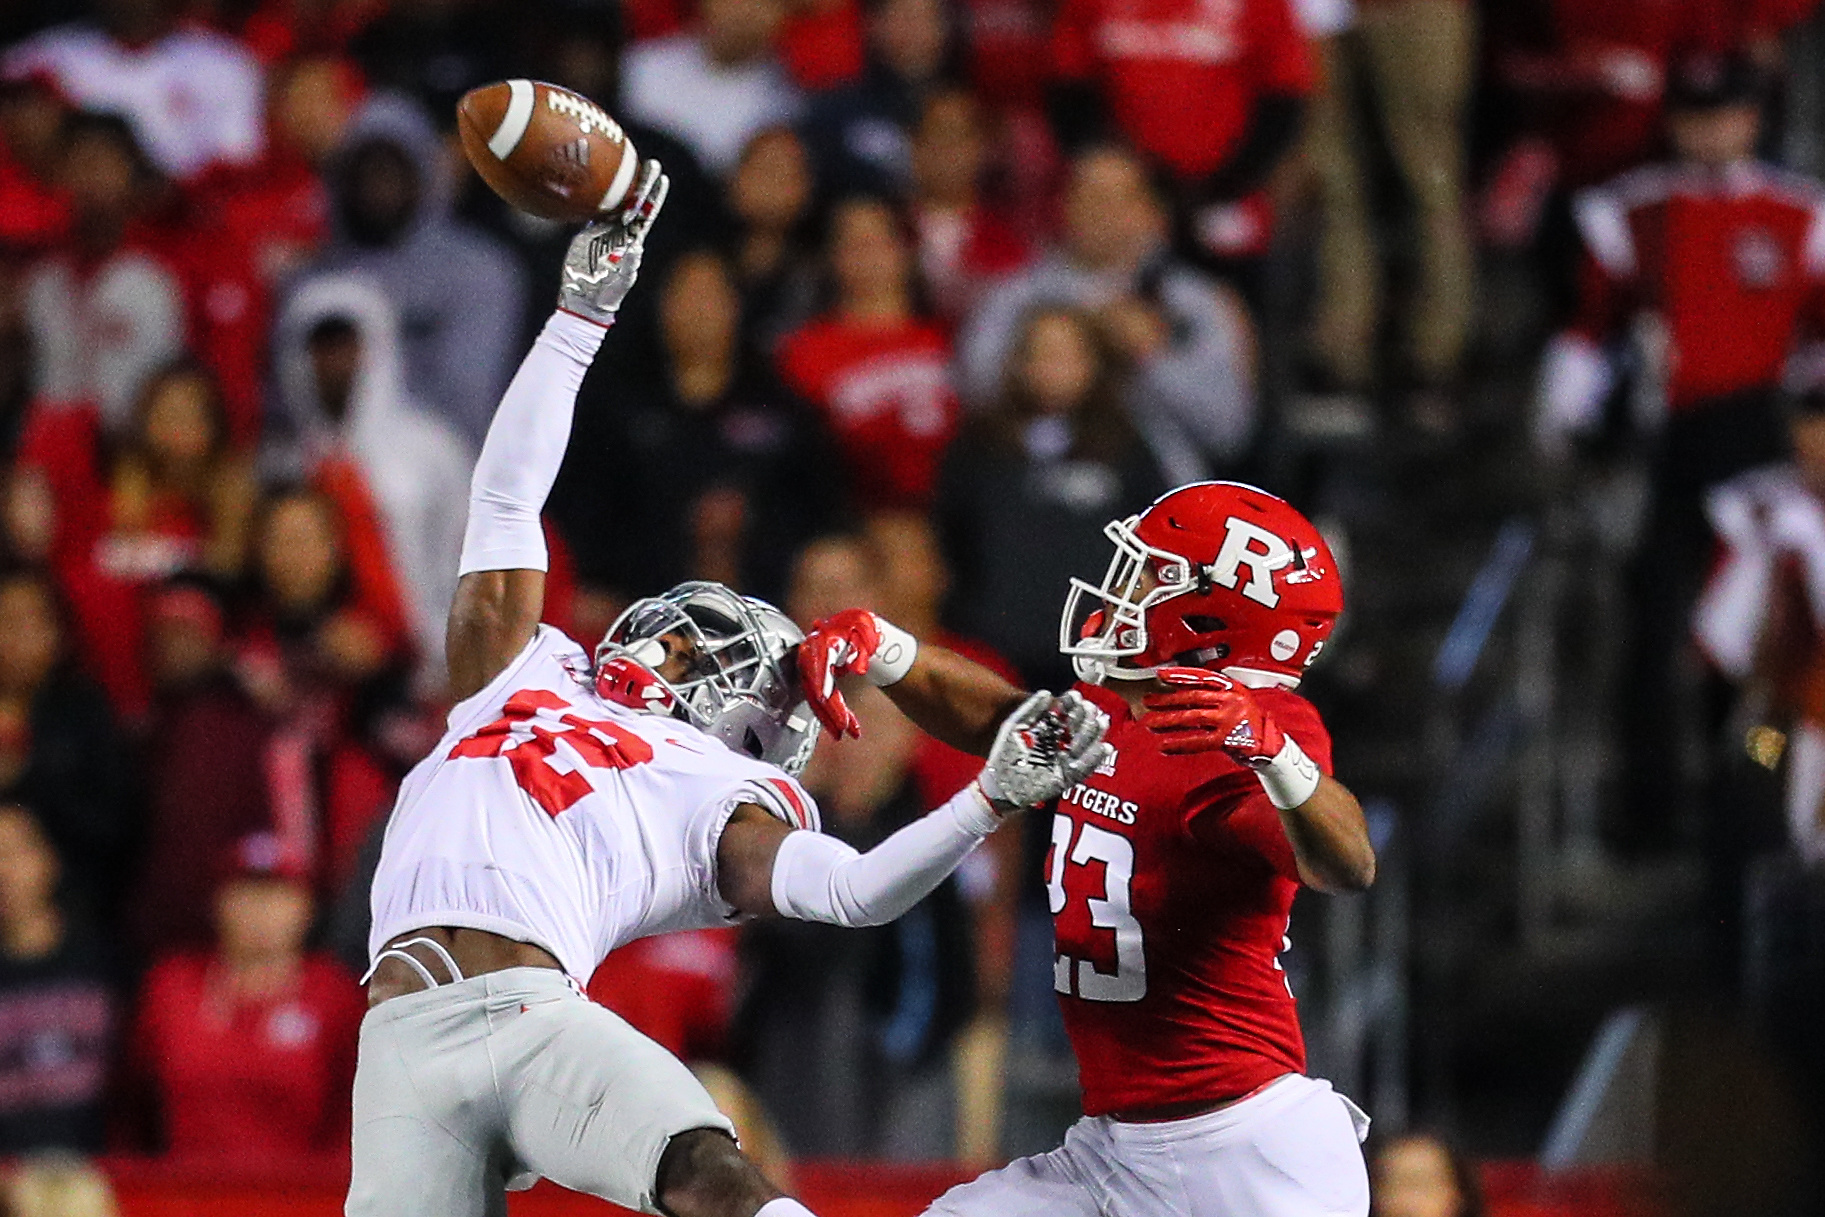 COLLEGE FOOTBALL: SEP 30 Ohio State at Rutgers